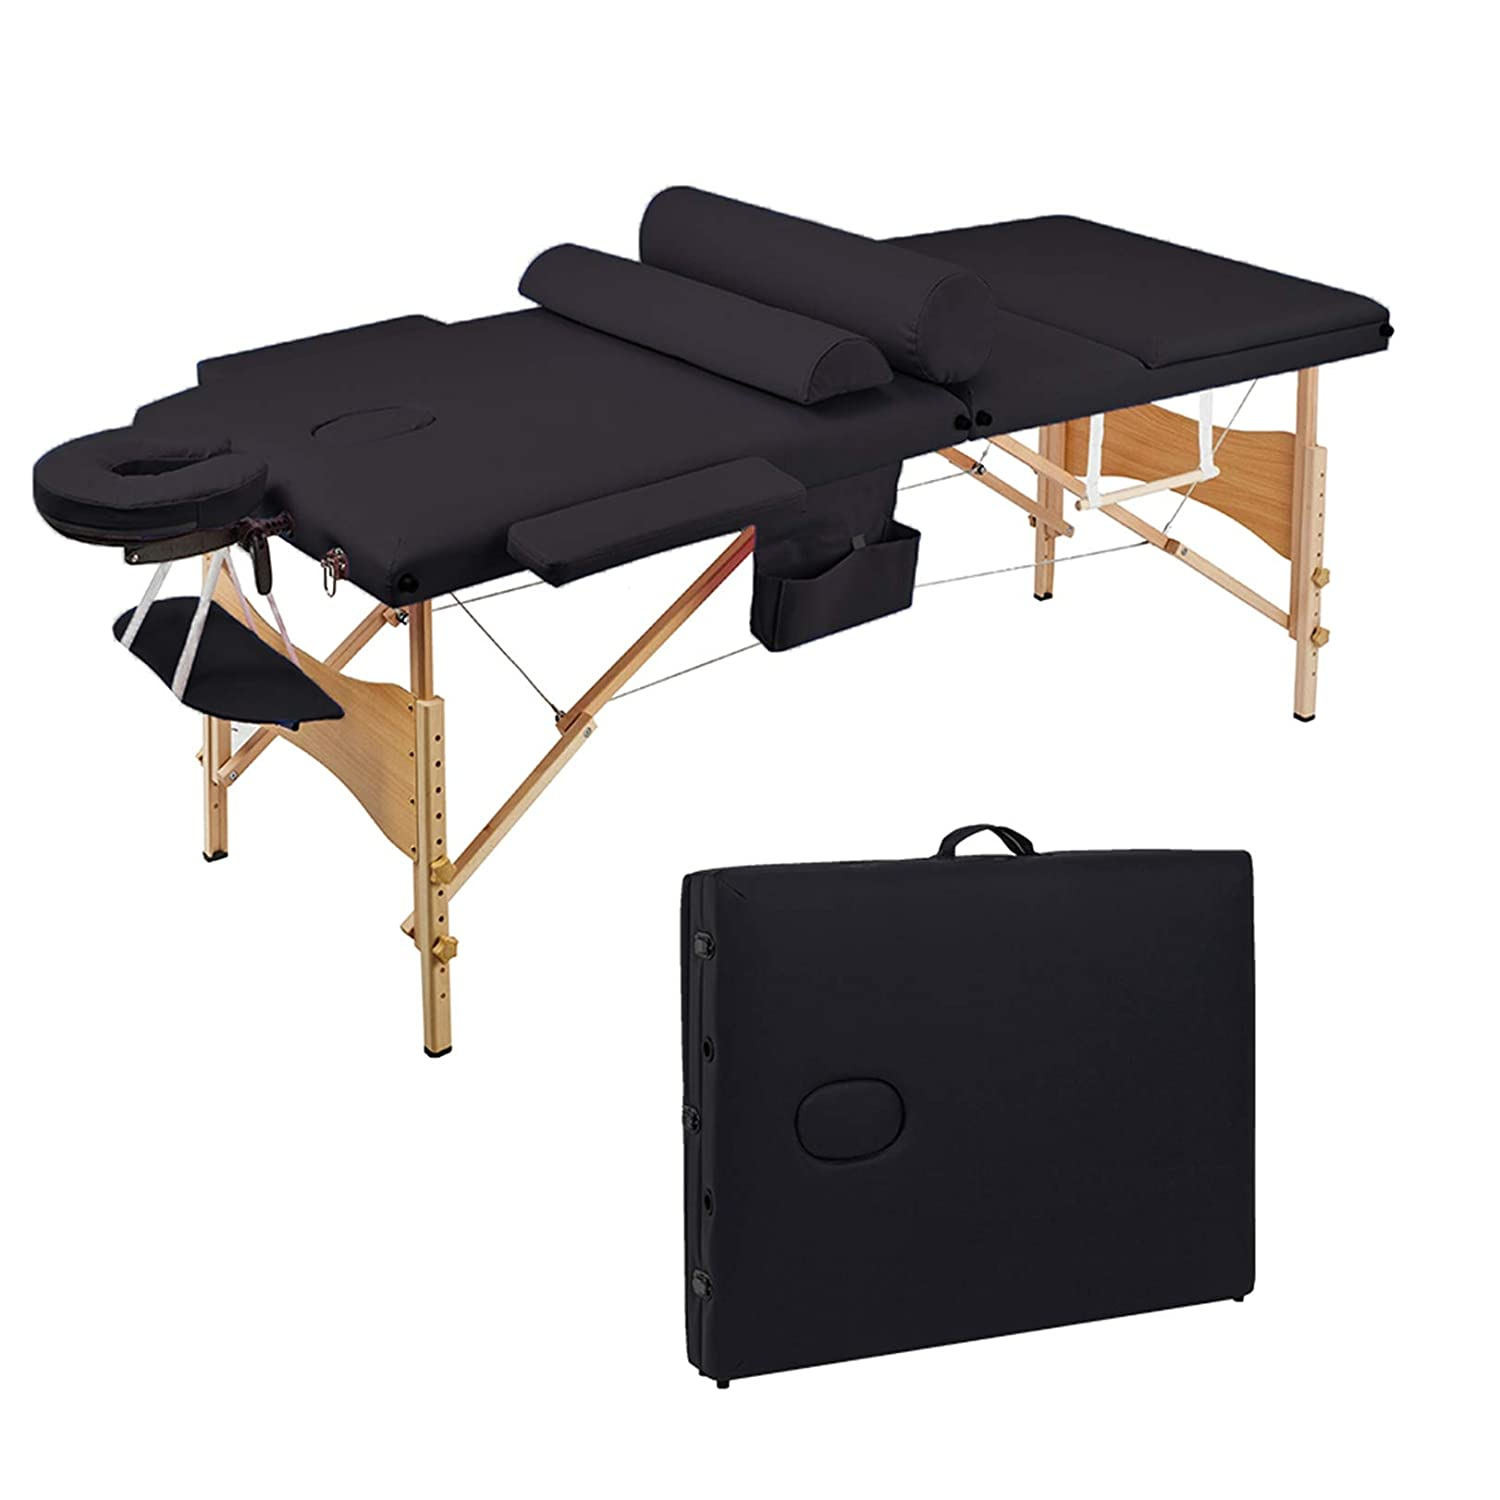 3 Sections Folding Portable SPA Set Max 65% OFF High order Massage Bodybuilding B Table